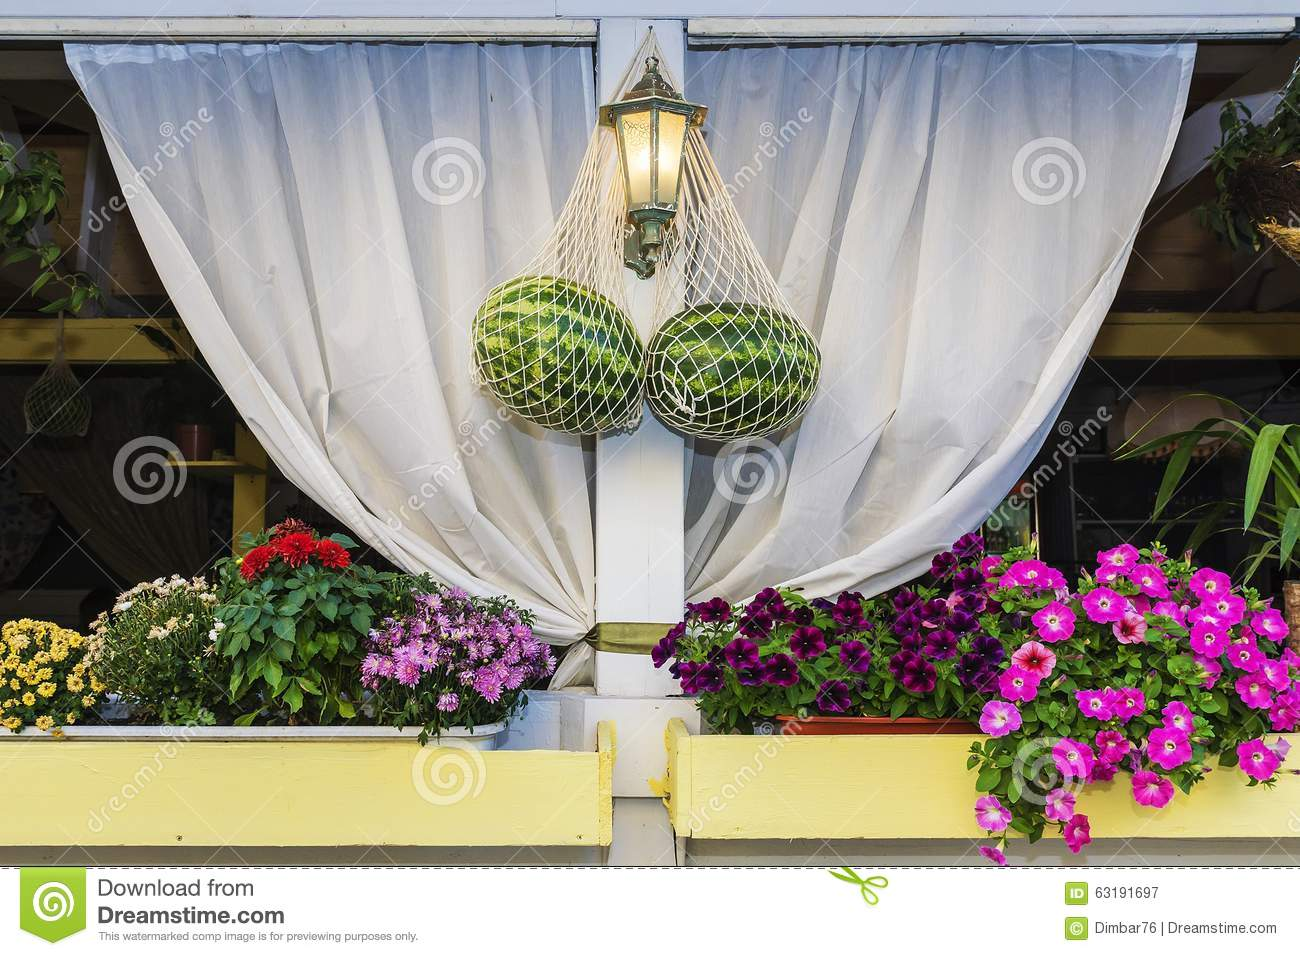 Design Dimbar Design Of A Sidewalk Cafe Stock Image Image Of Garden 63191697